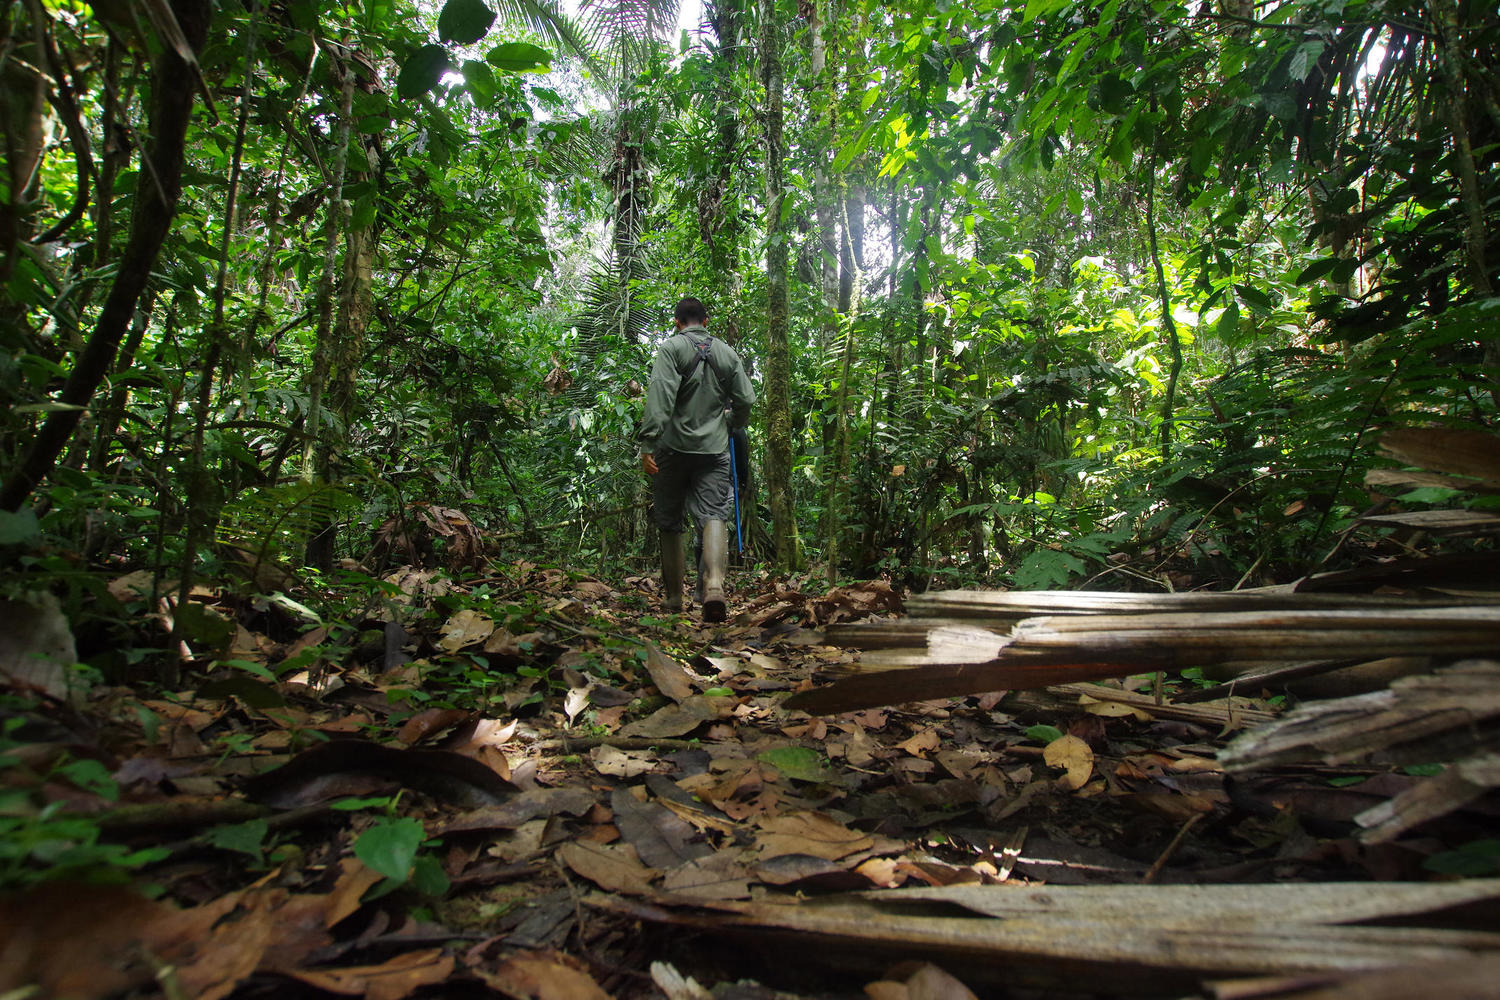 Walking with a naturalist guide in the Ecuadorian Amazon